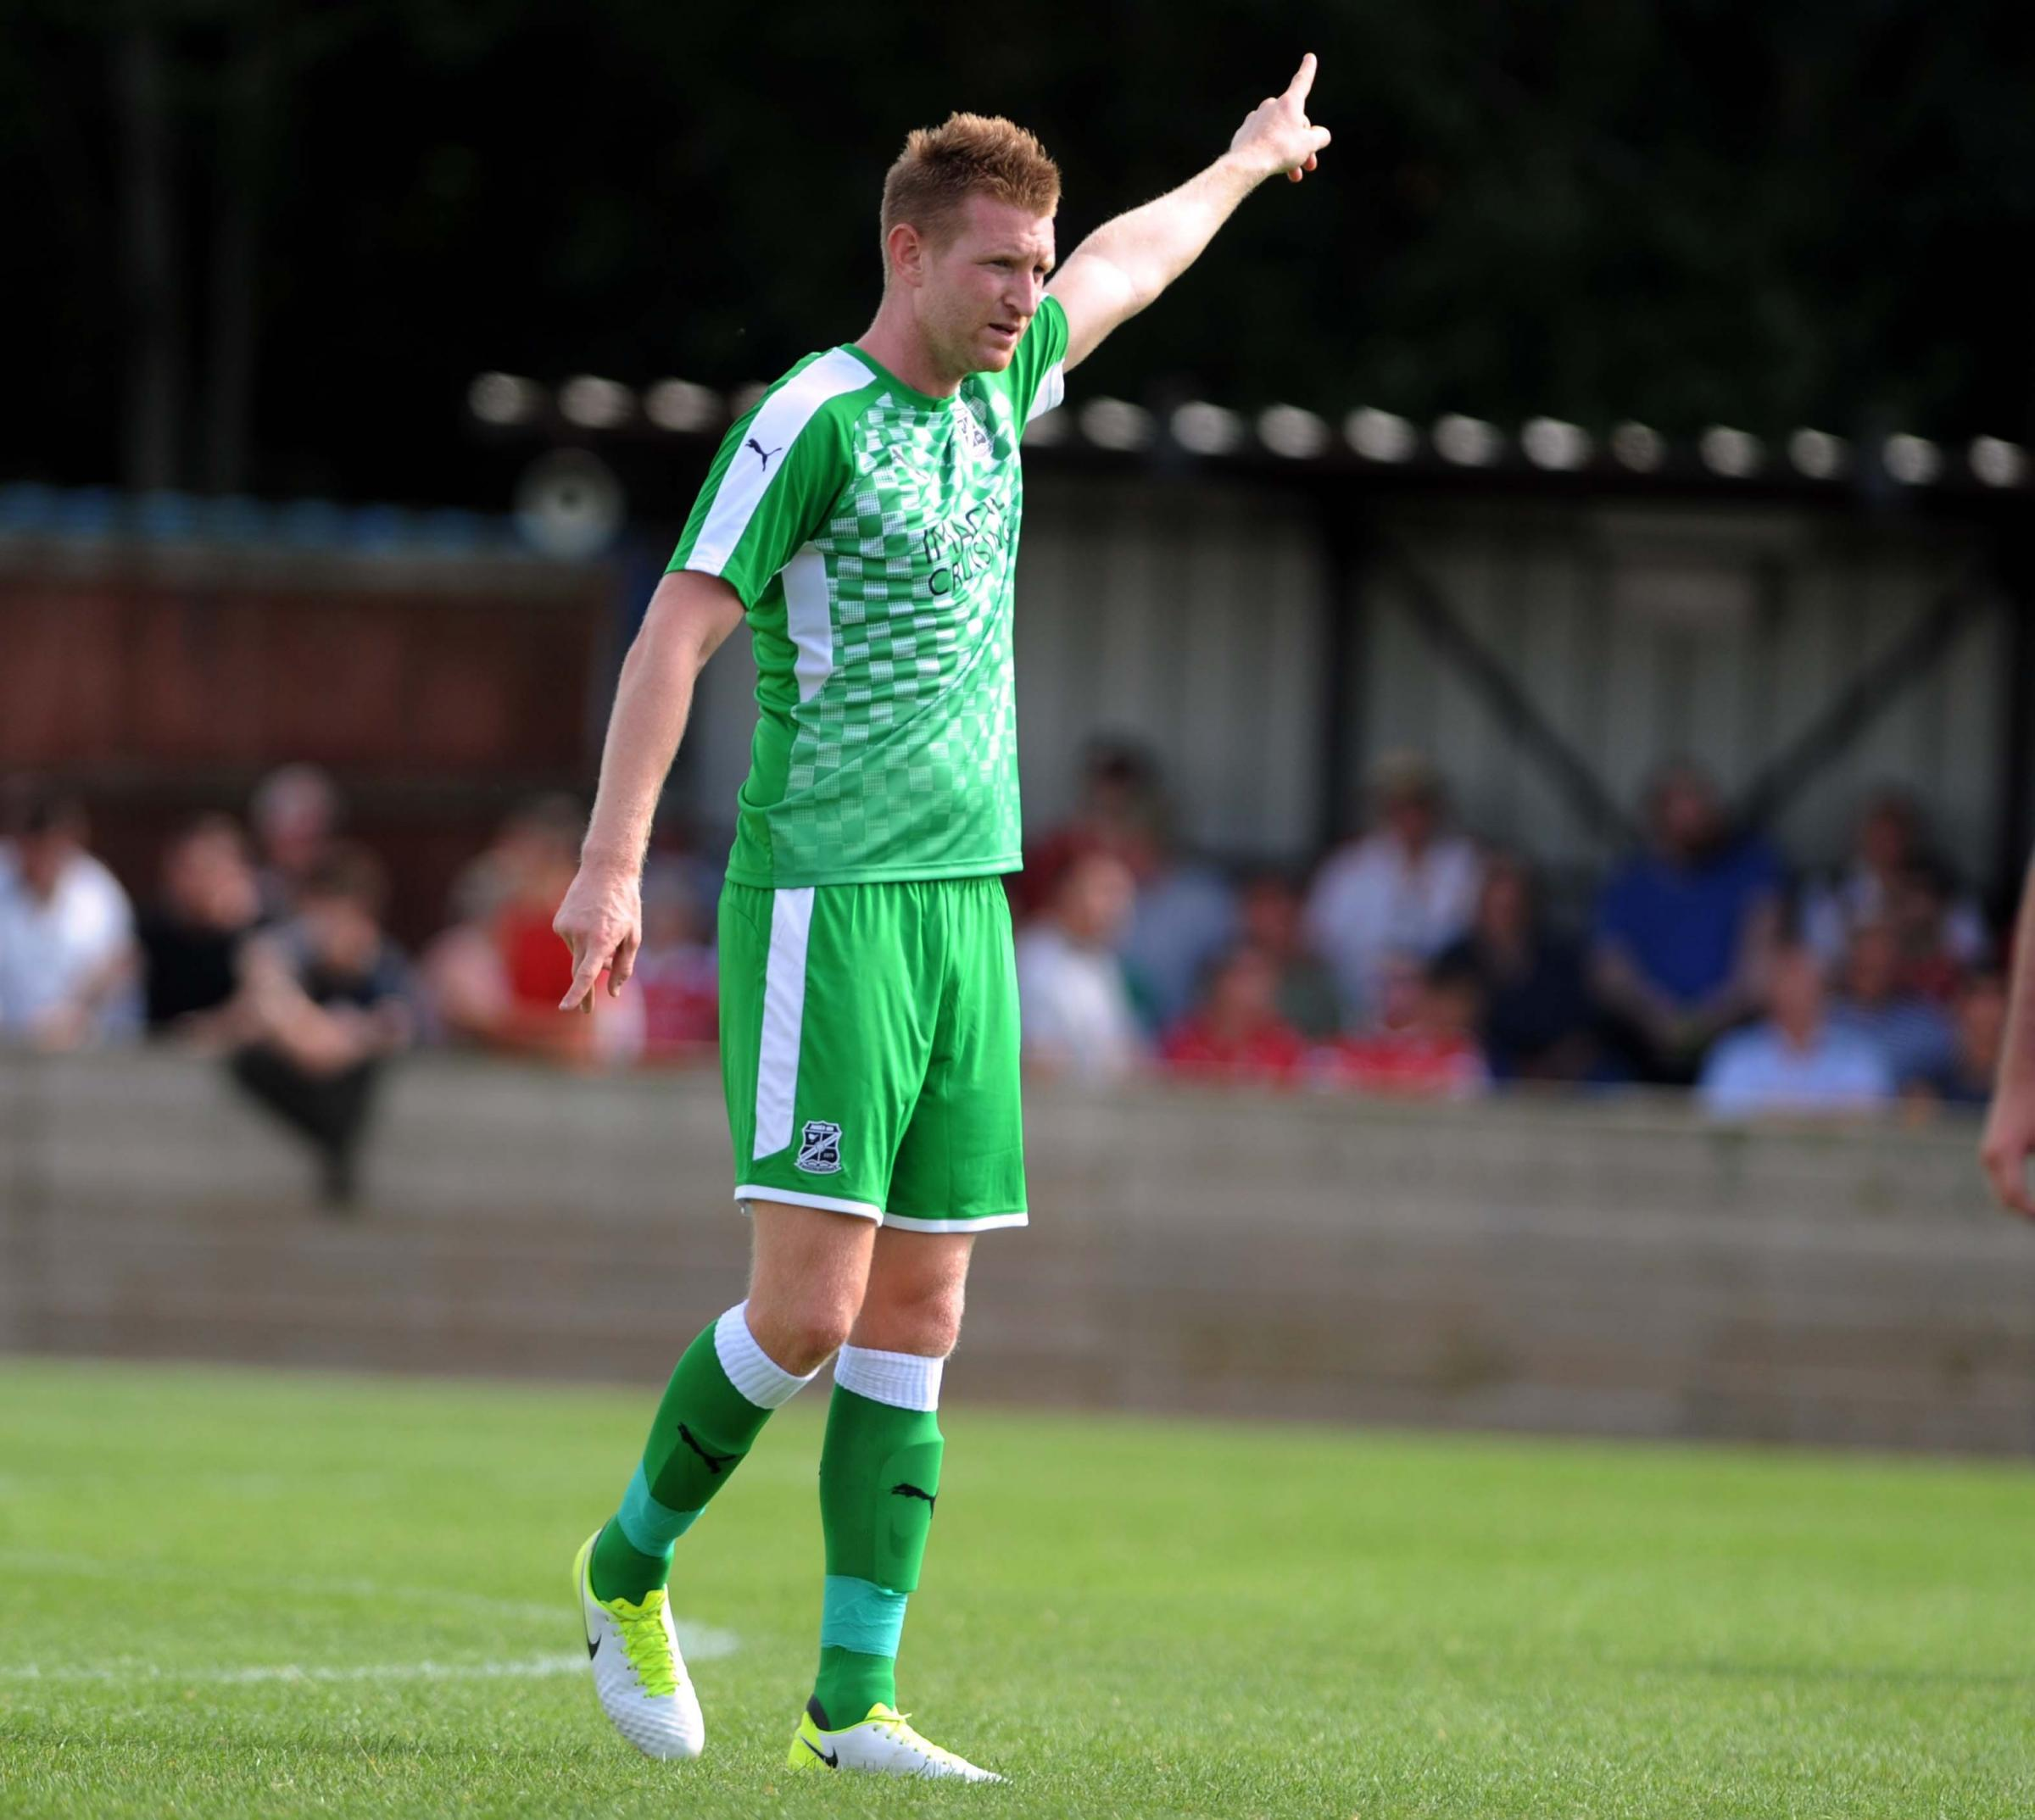 Chris Robertson is yet to appear for Swindon Town this season. 